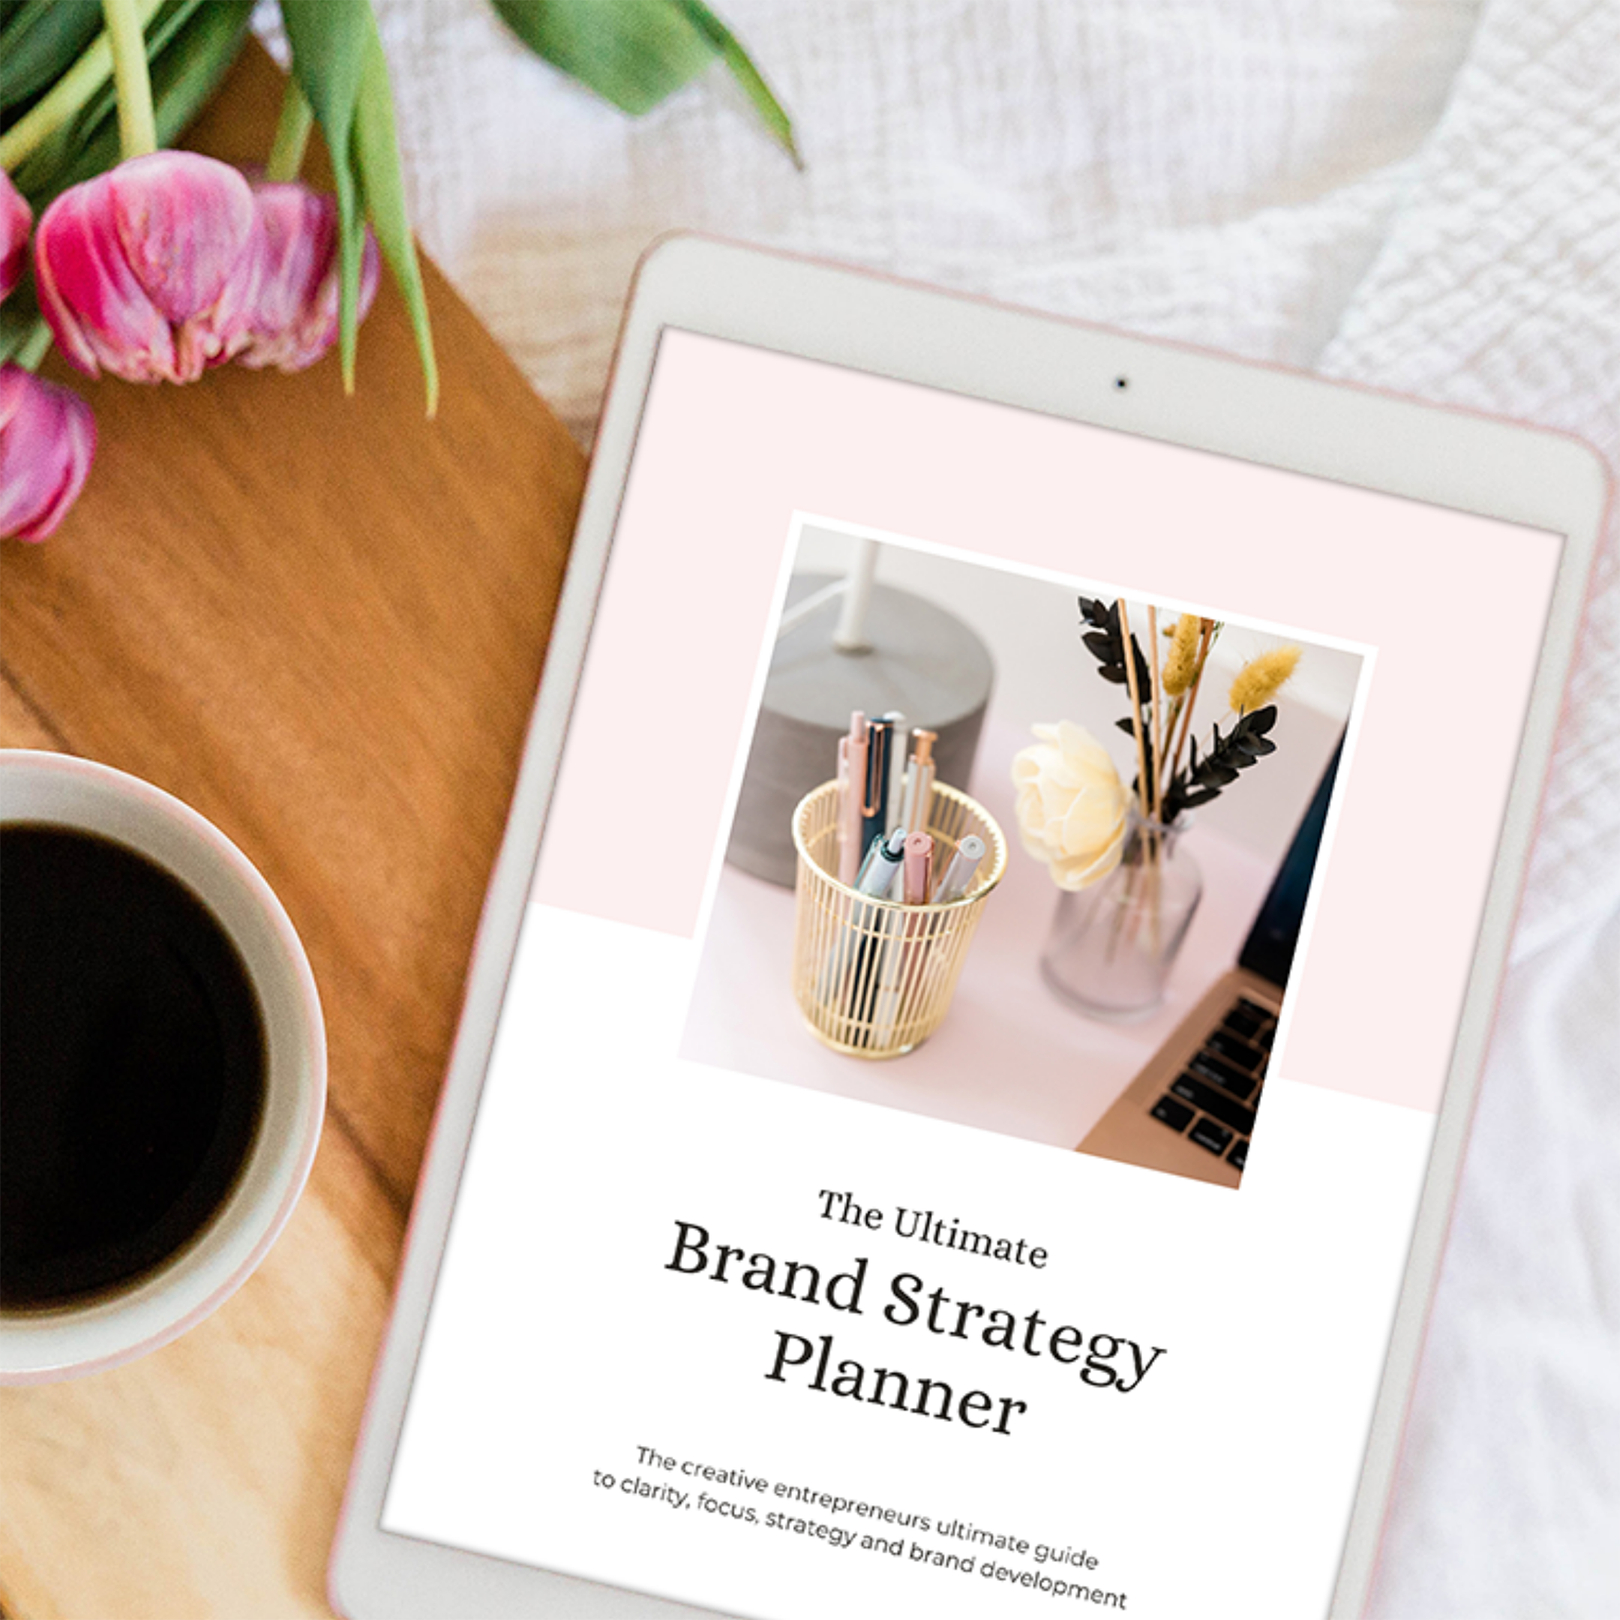 The Ultimate Brand Strategy Planner